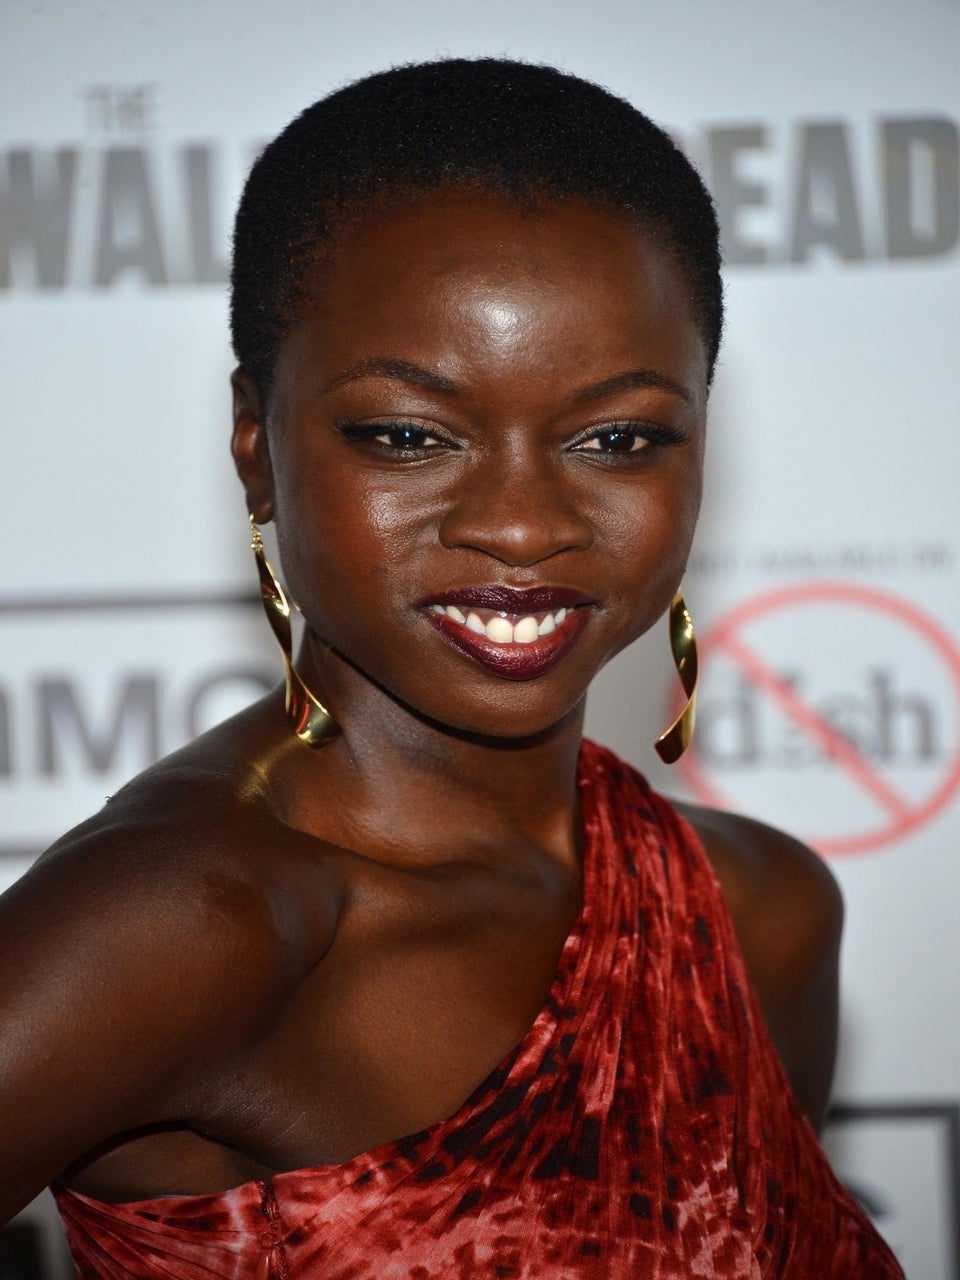 Meet <i>Walking Dead</i> Actress Danai Gurira